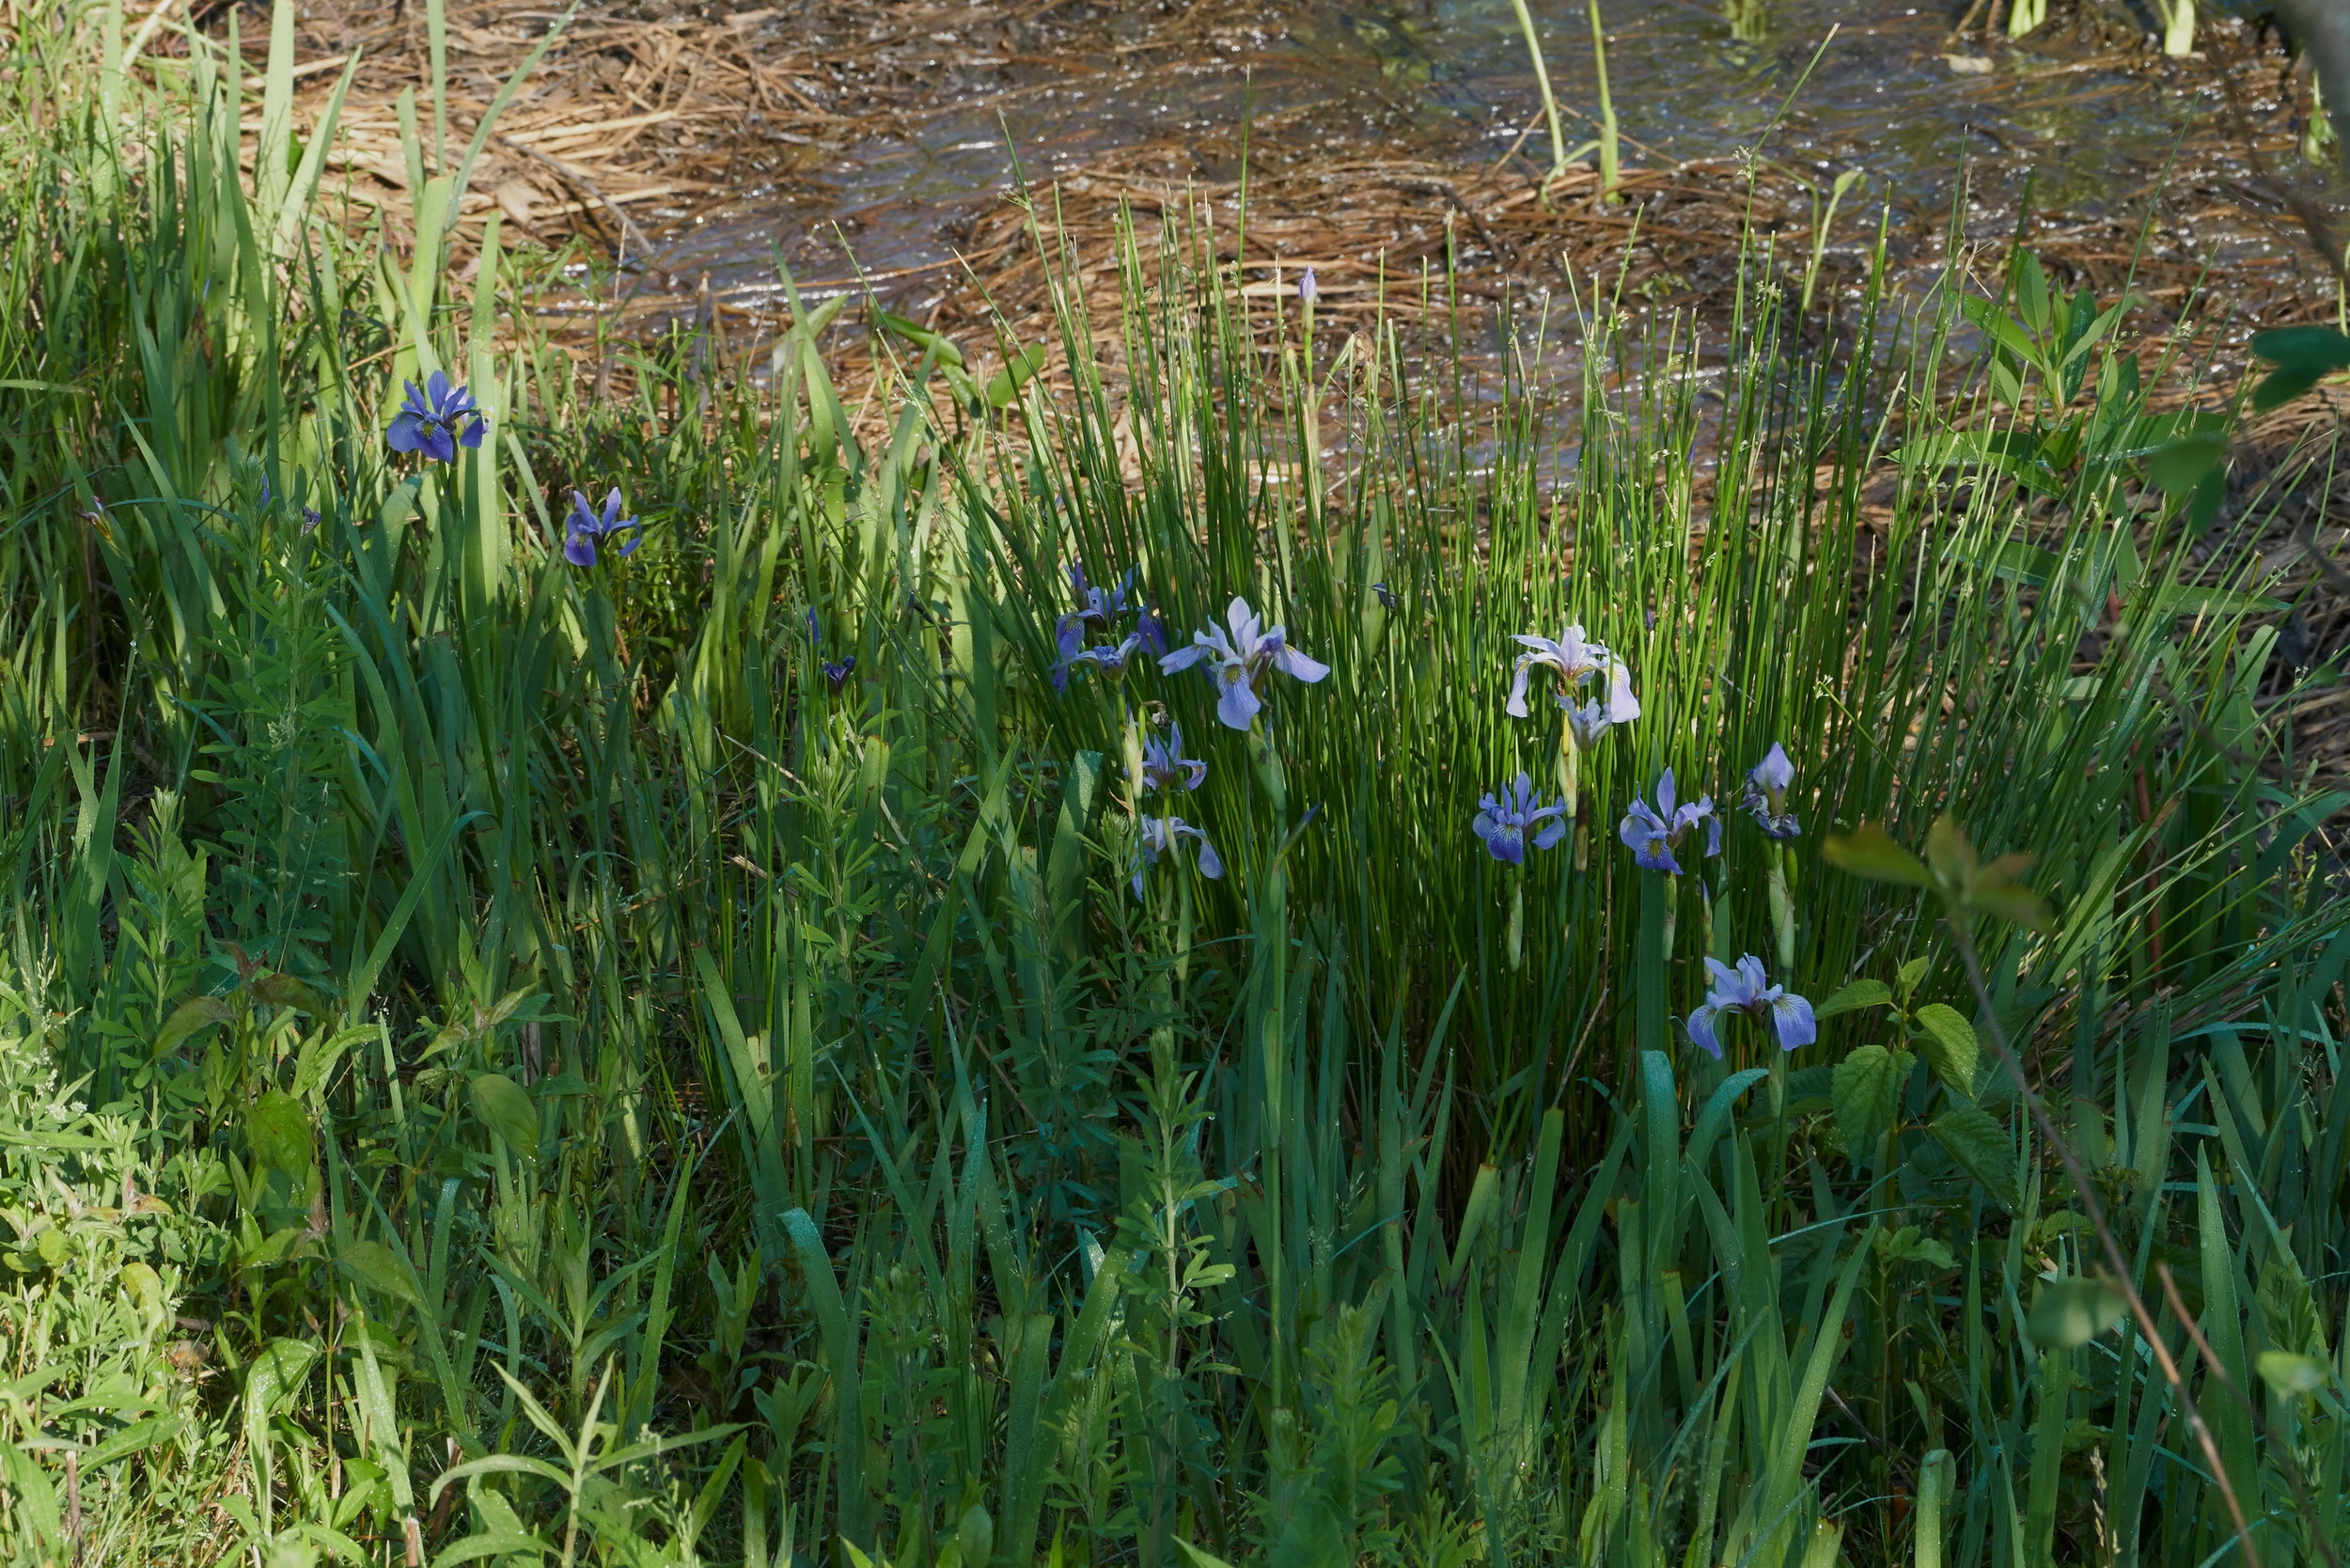 Siberian iris 2 resz storm pond one May 24 2018.jpg